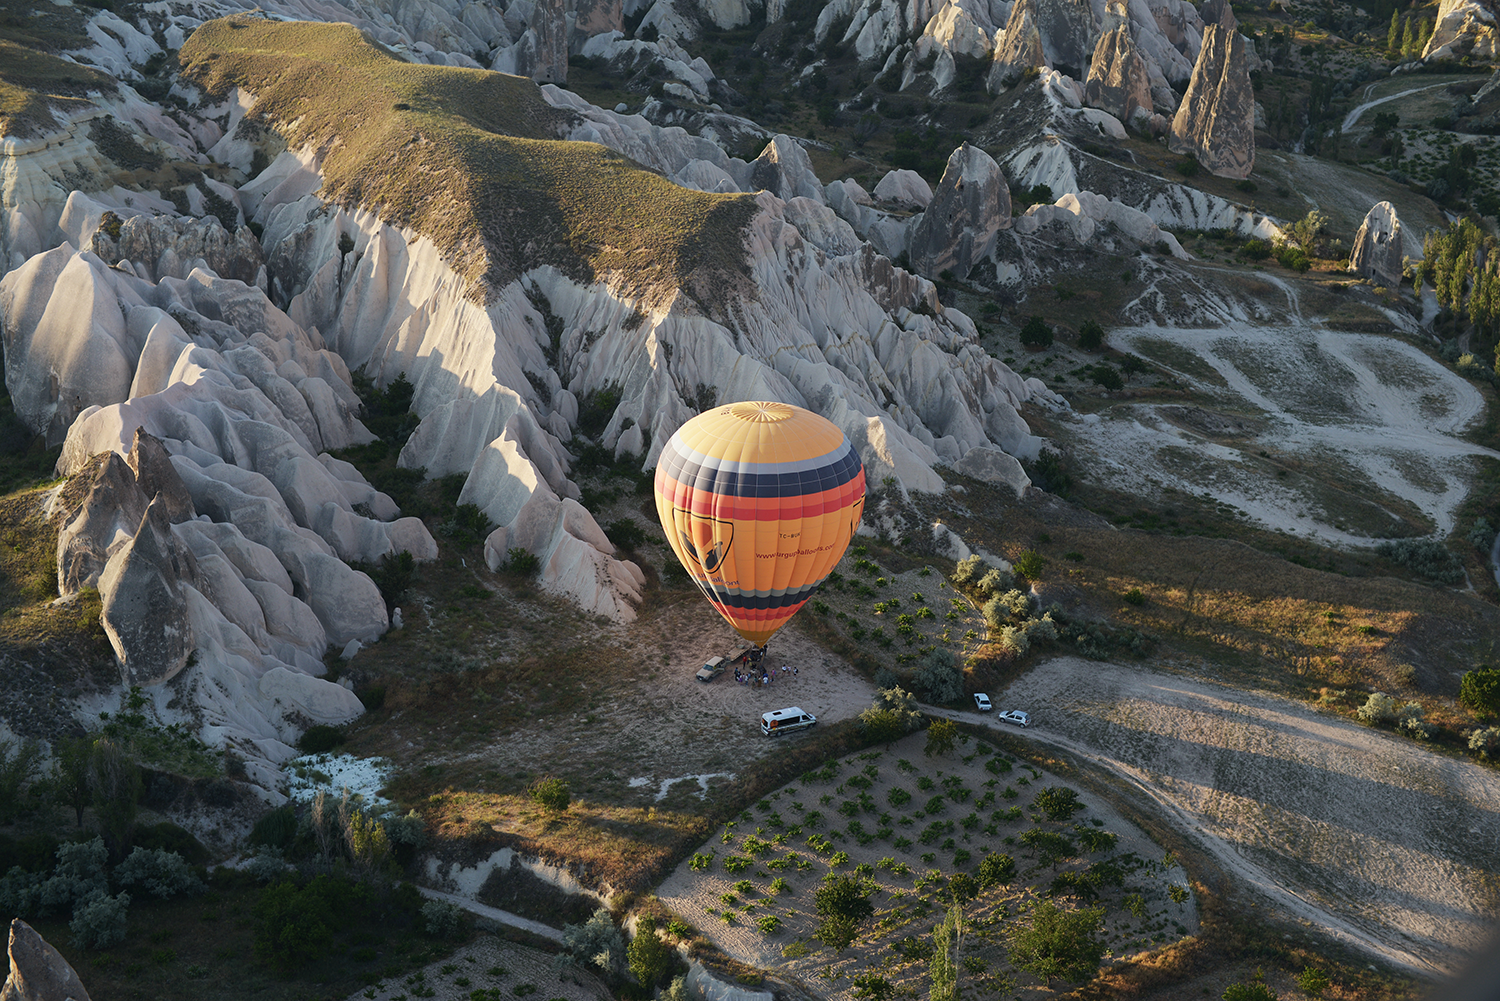 Hot Air Balloon Sunrise / Cappadocia, Turkey Photo Diary / Sultan Cave Suites Hot Air Balloons, Cappadocia Turkey, Hot Air Balloons Turkey, Turkey Travels, Travel Photodiary Turkey, Cappadocia Goreme, Sultan Cave Suites / FOREVERVANNY.com